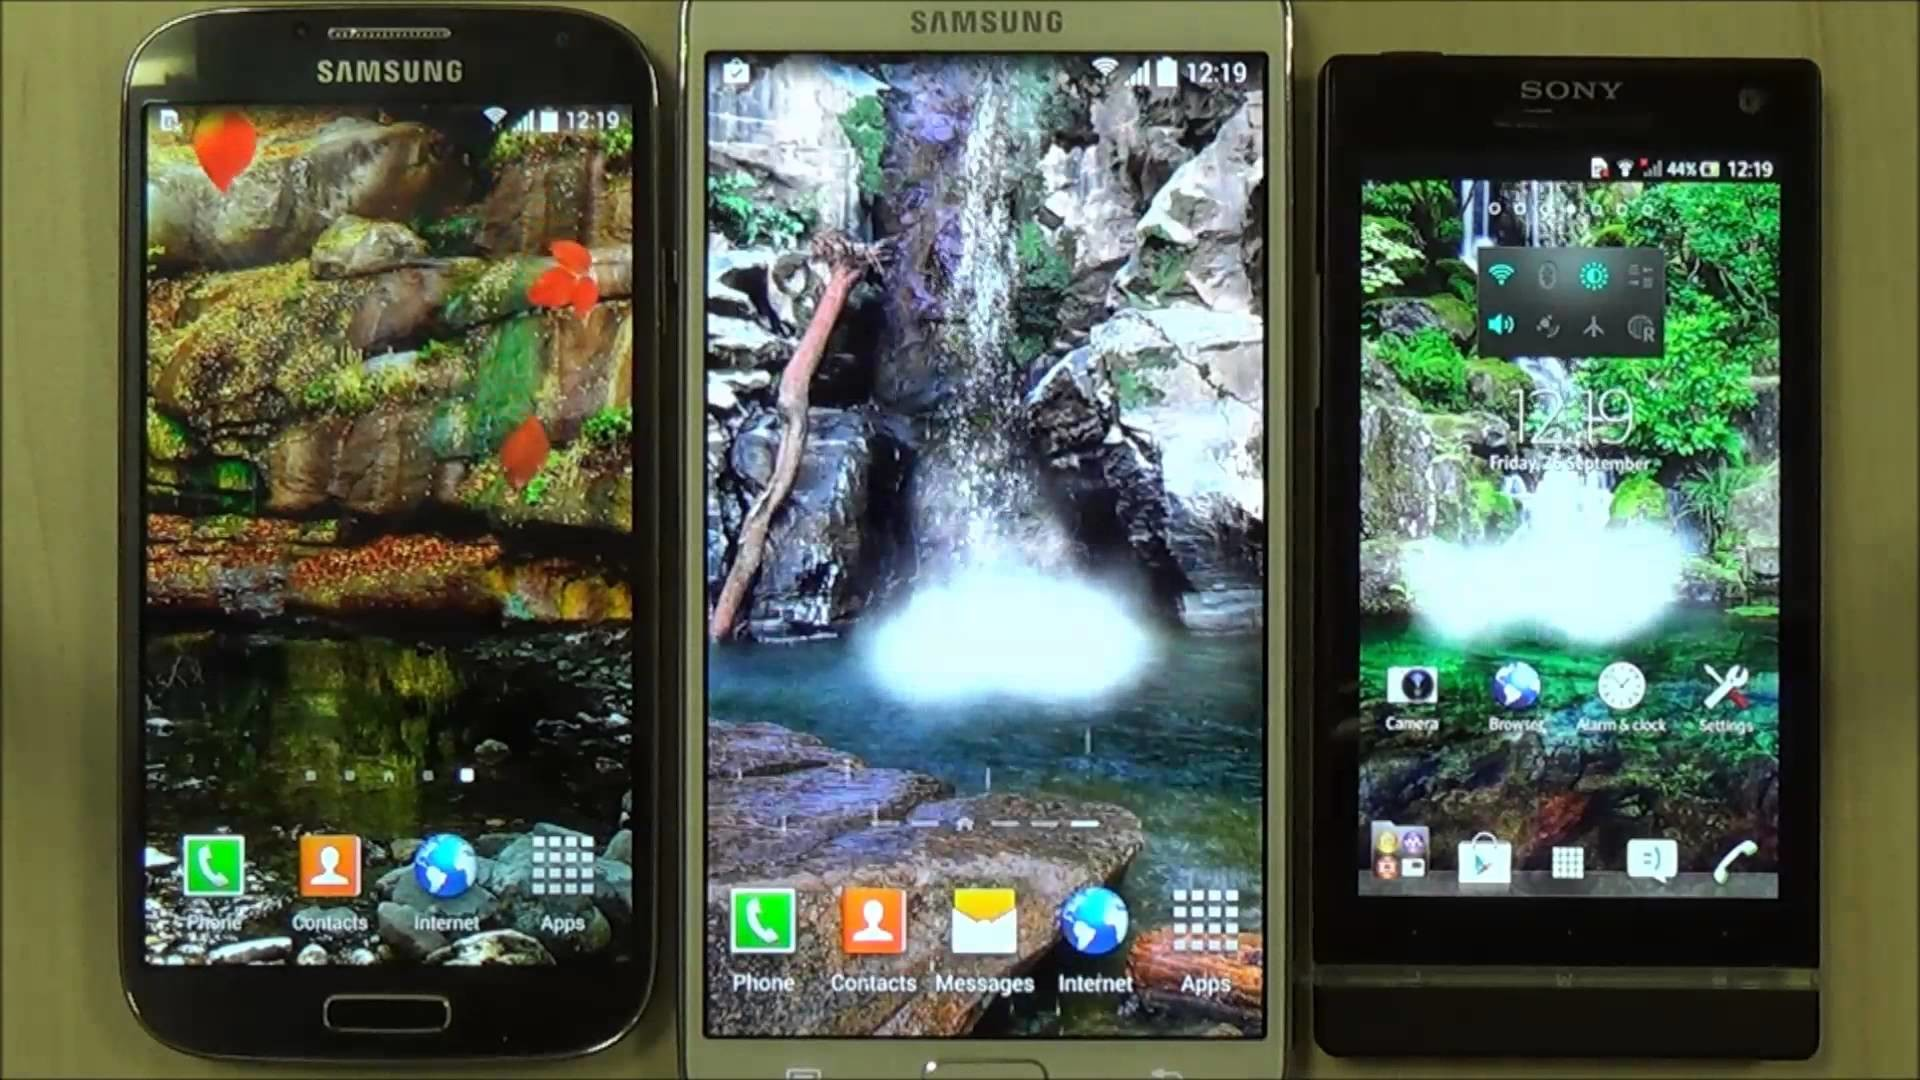 Animated waterfall live wallpaper for android phones and tablets – YouTube